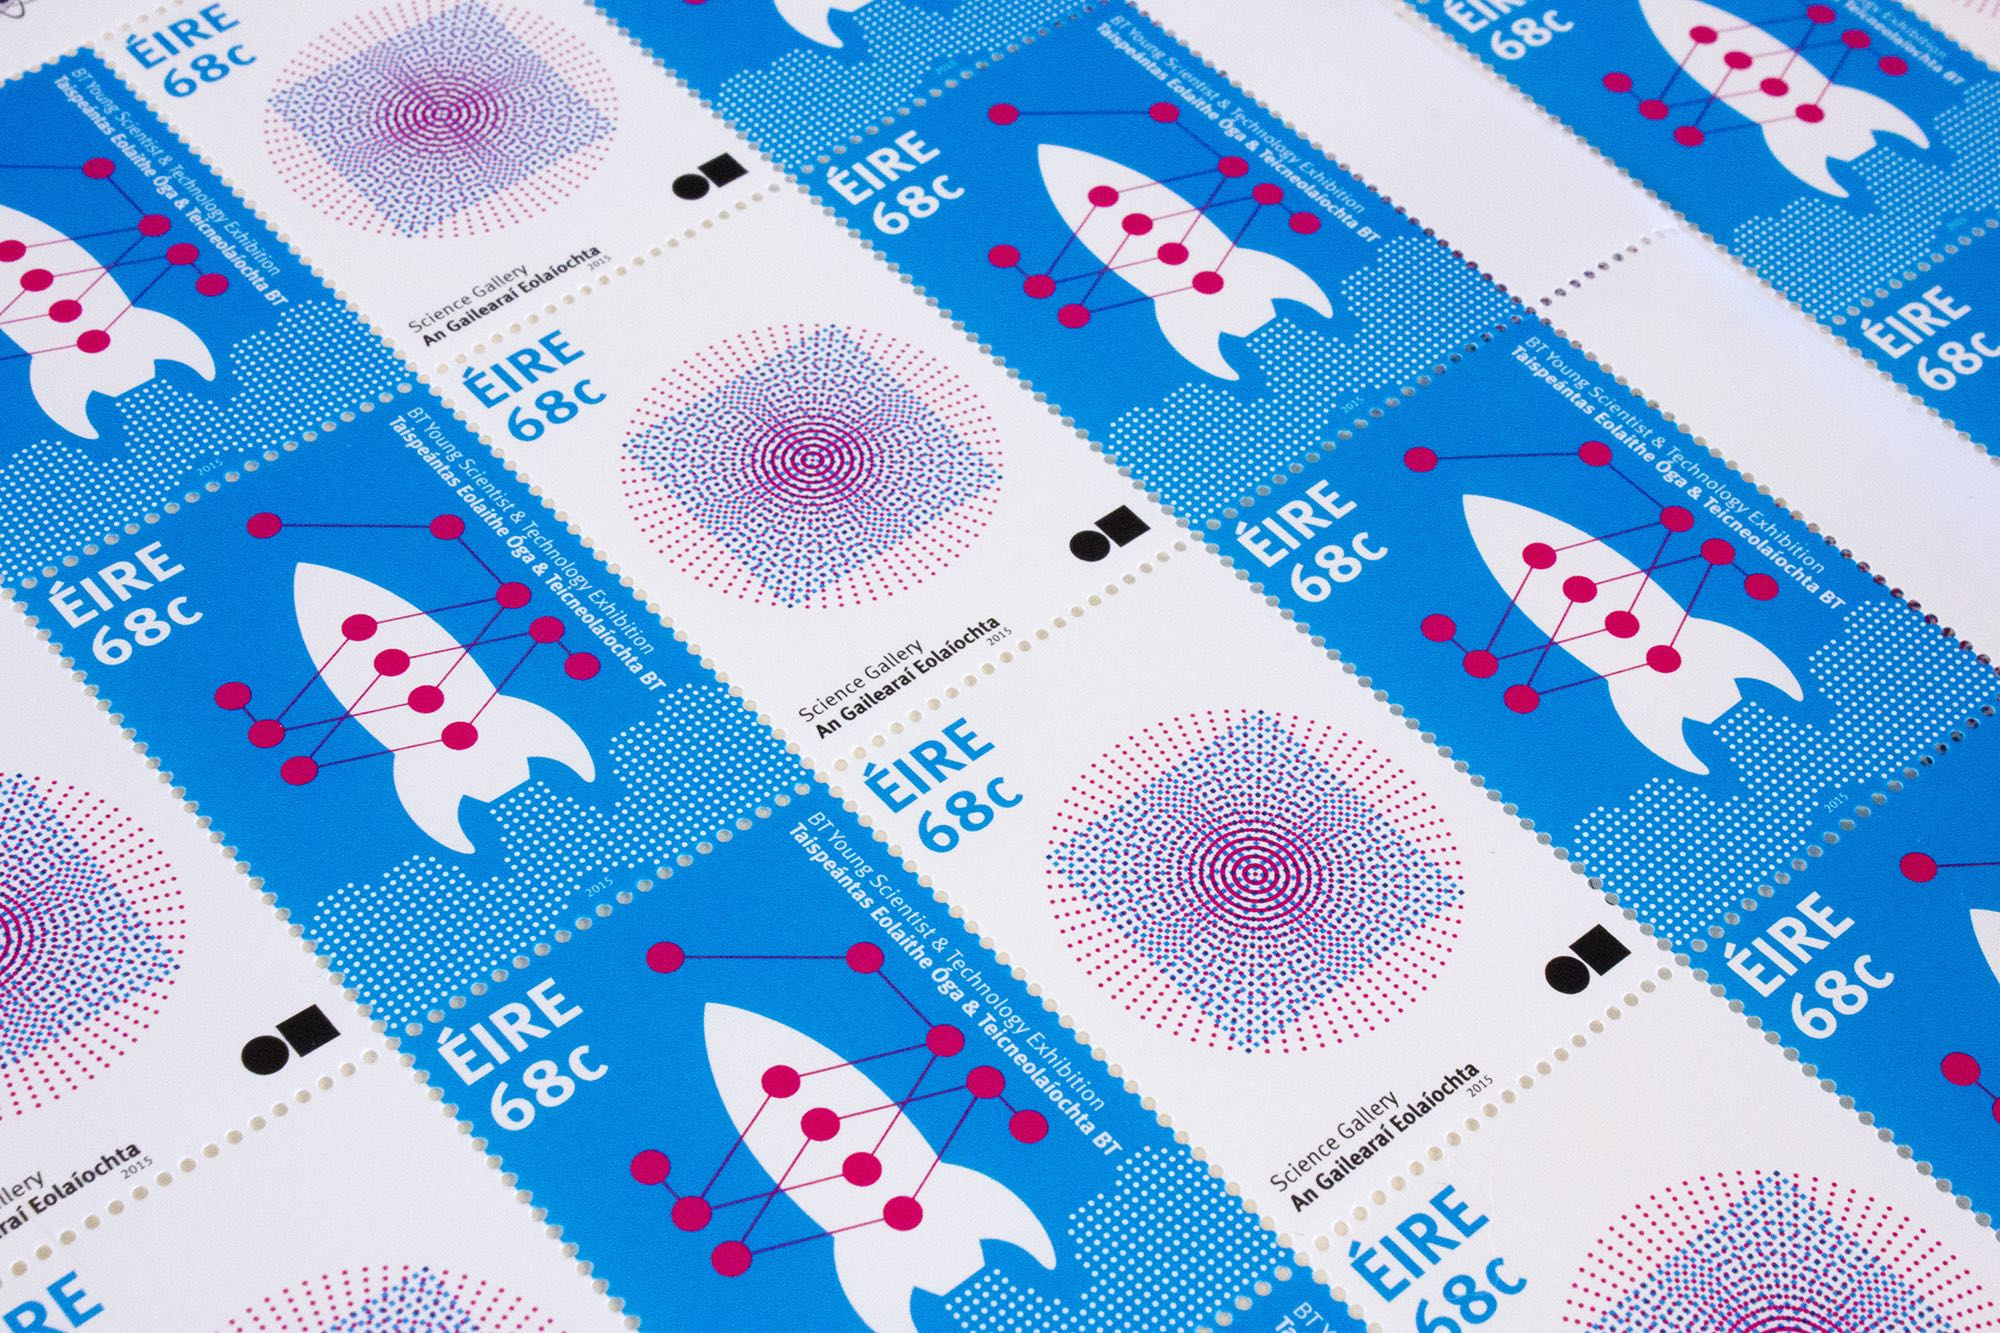 Science Stamps for An Post 2014 designed by Detail Design Studio copy